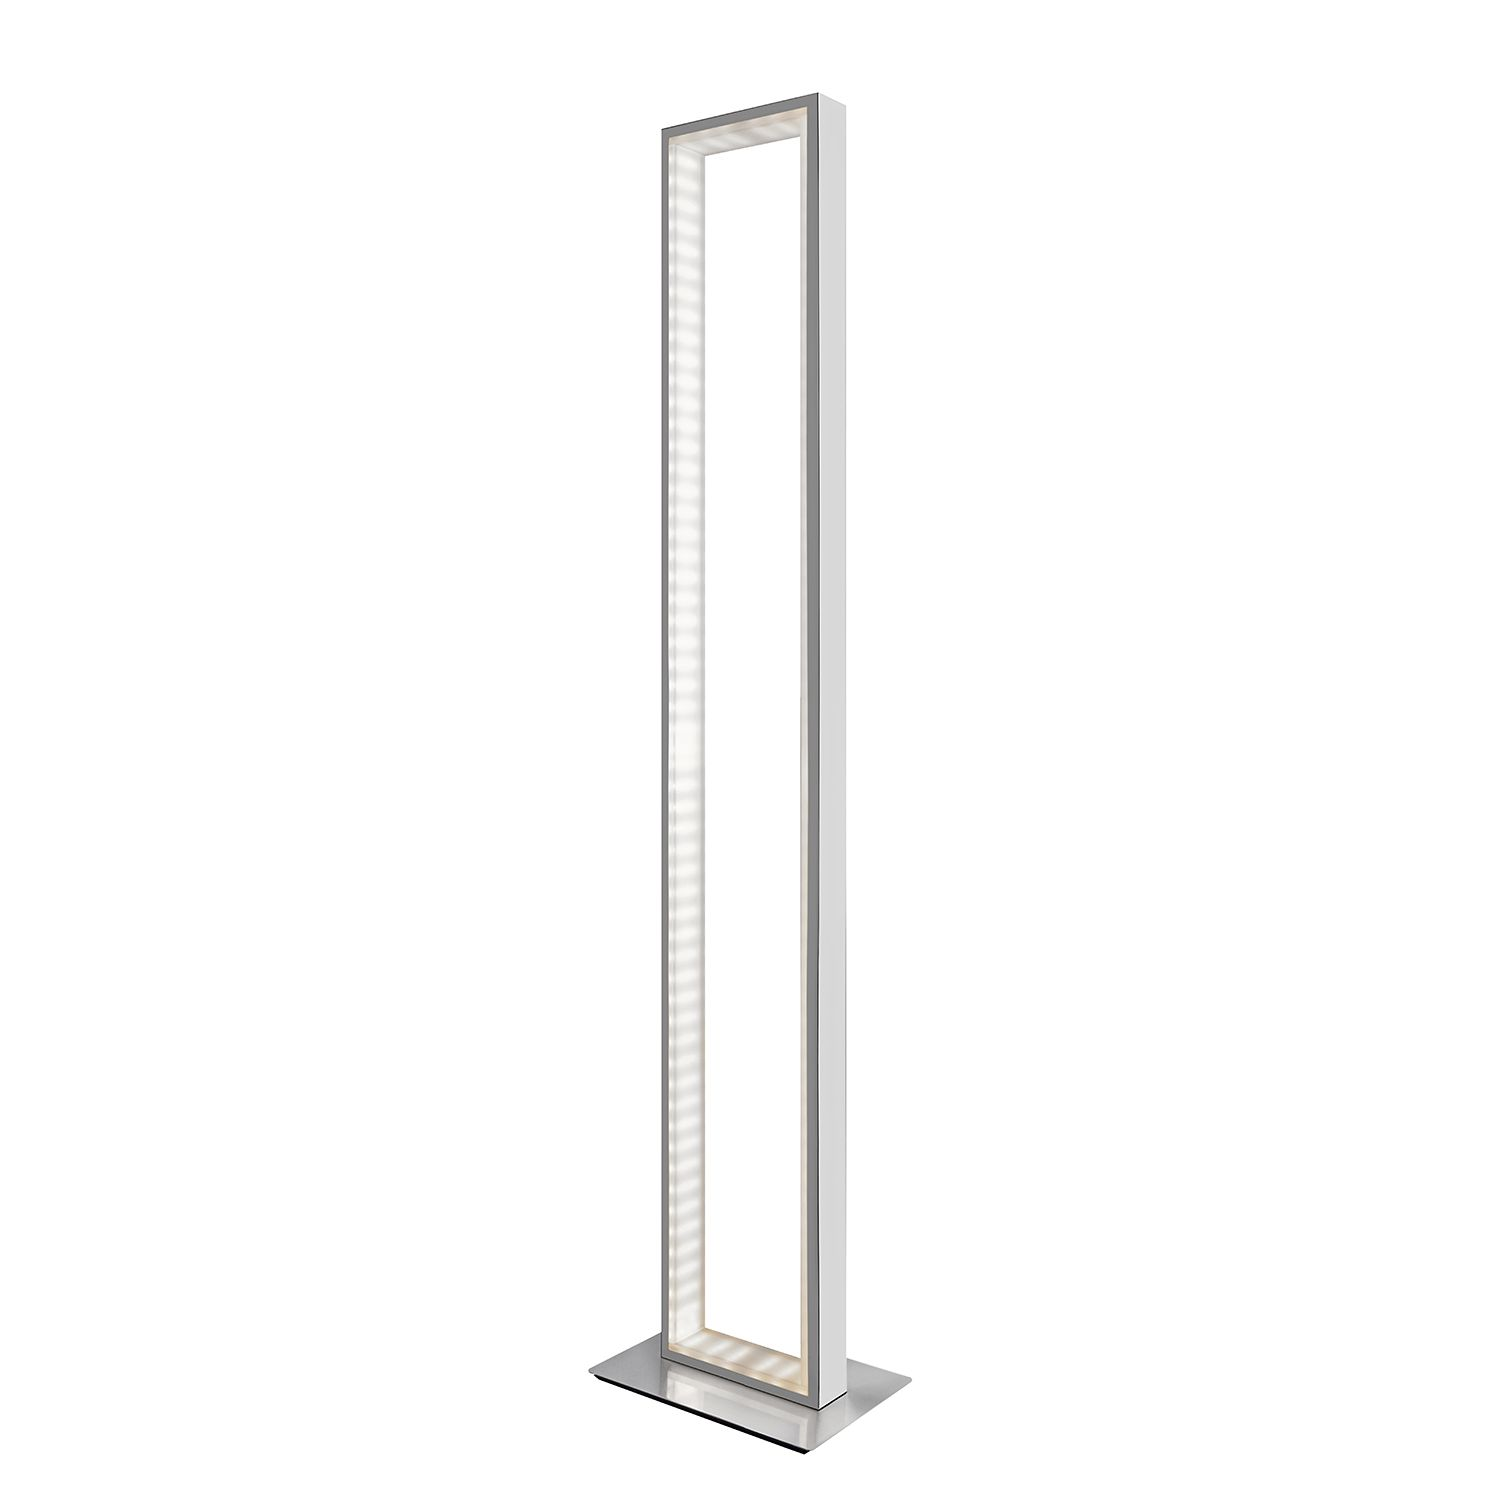 LED-Stehleuchte Otti ● Metall ● Silber Satin- Sompex A+